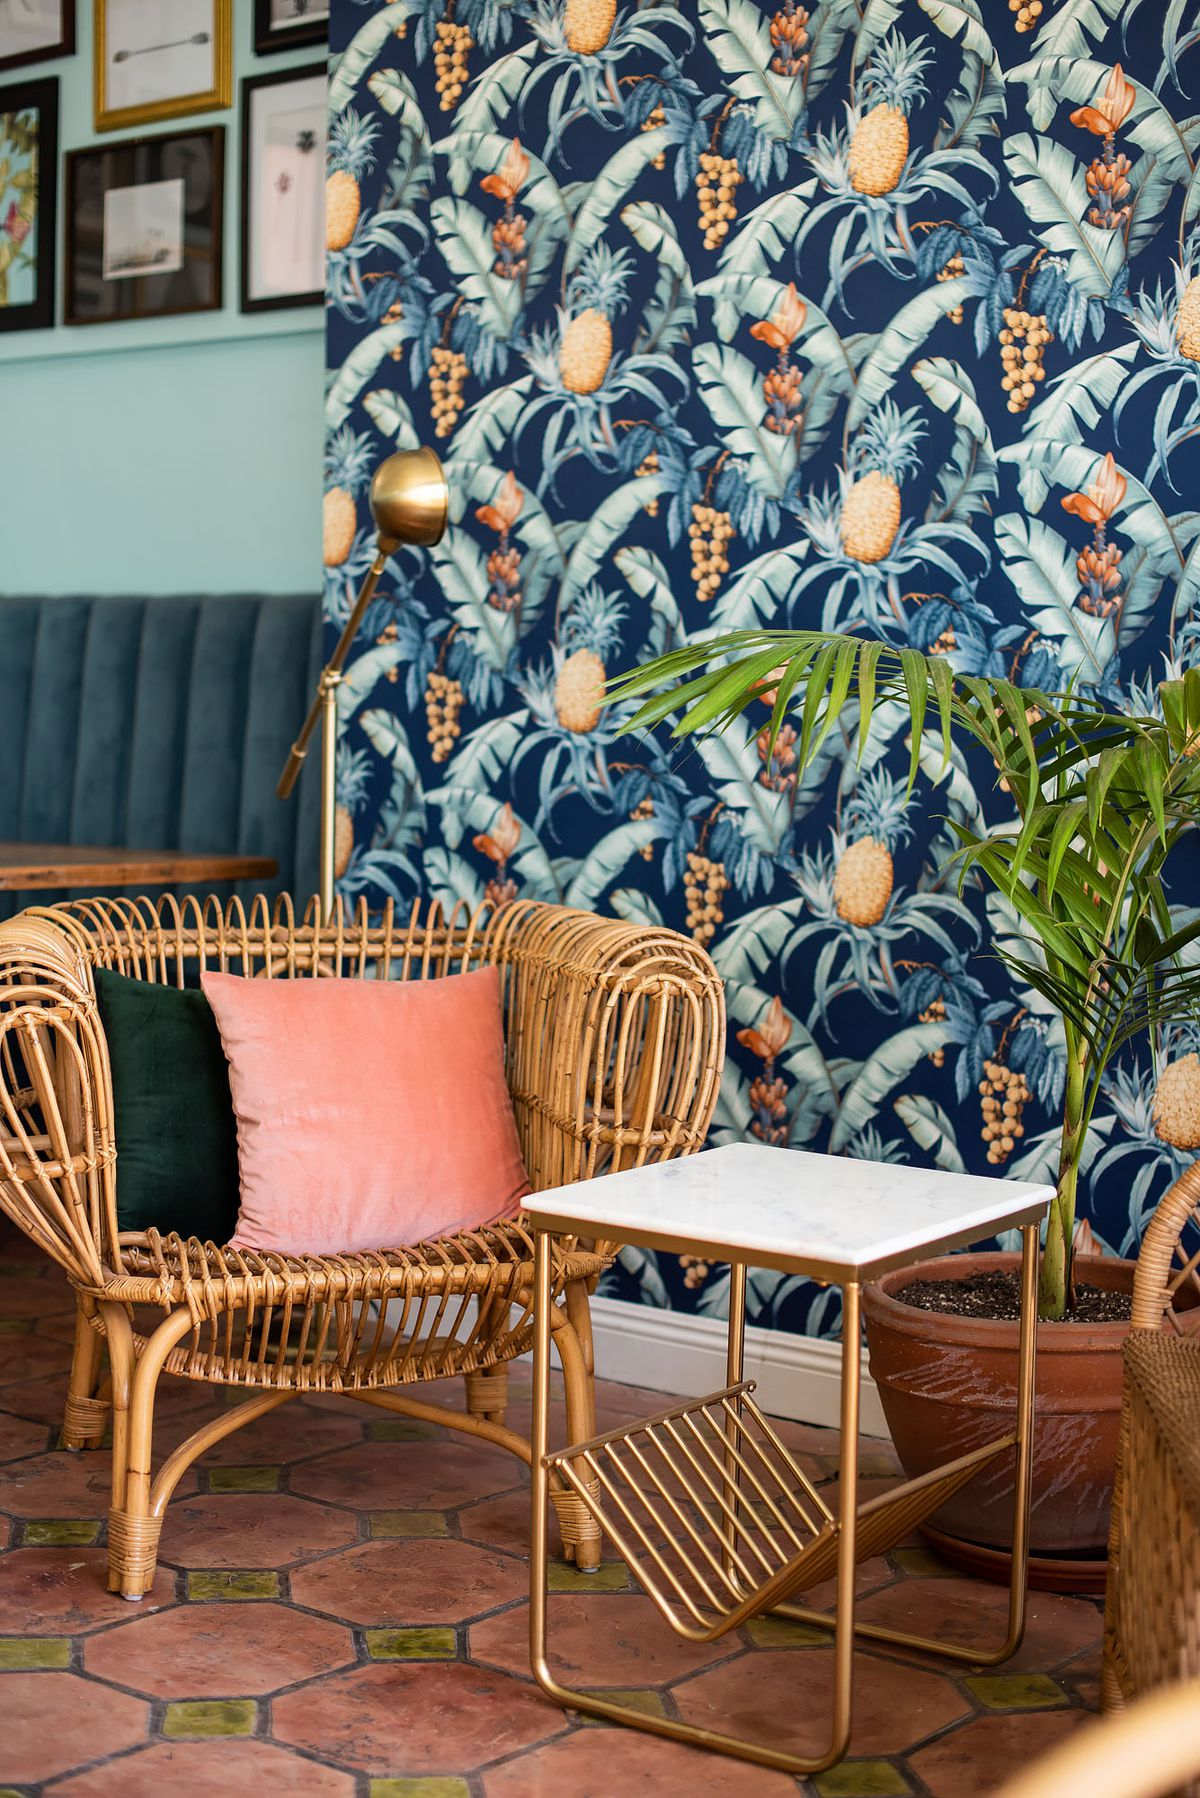 A rattan chair in front of a colorful bar wallpaper.